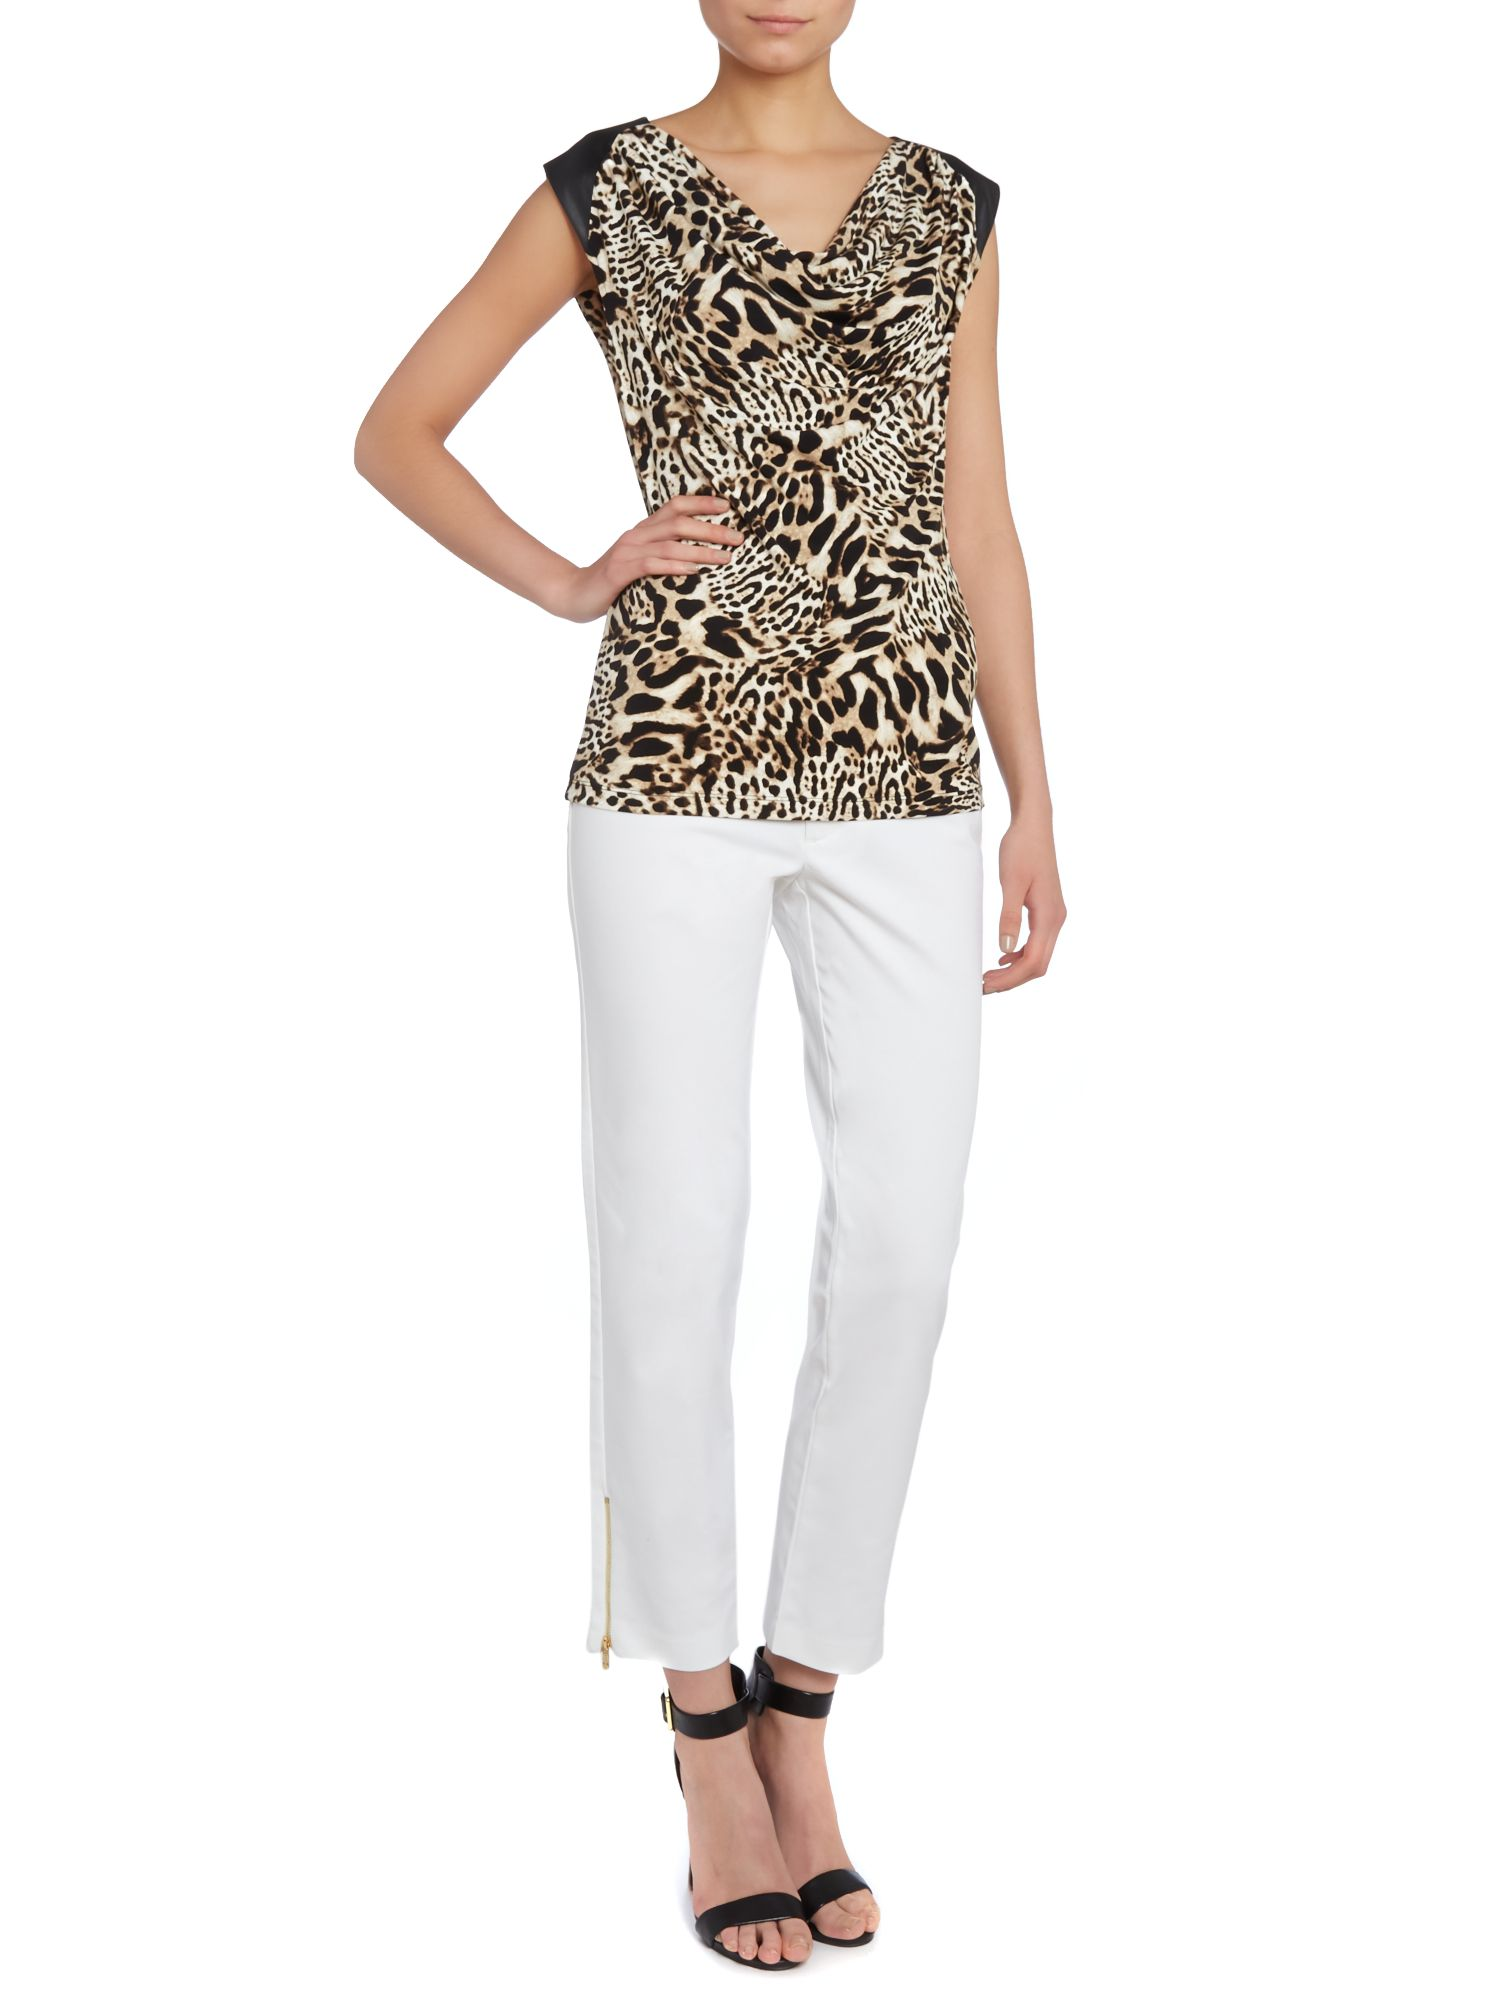 Animal Print Faux Leather Cowl Top